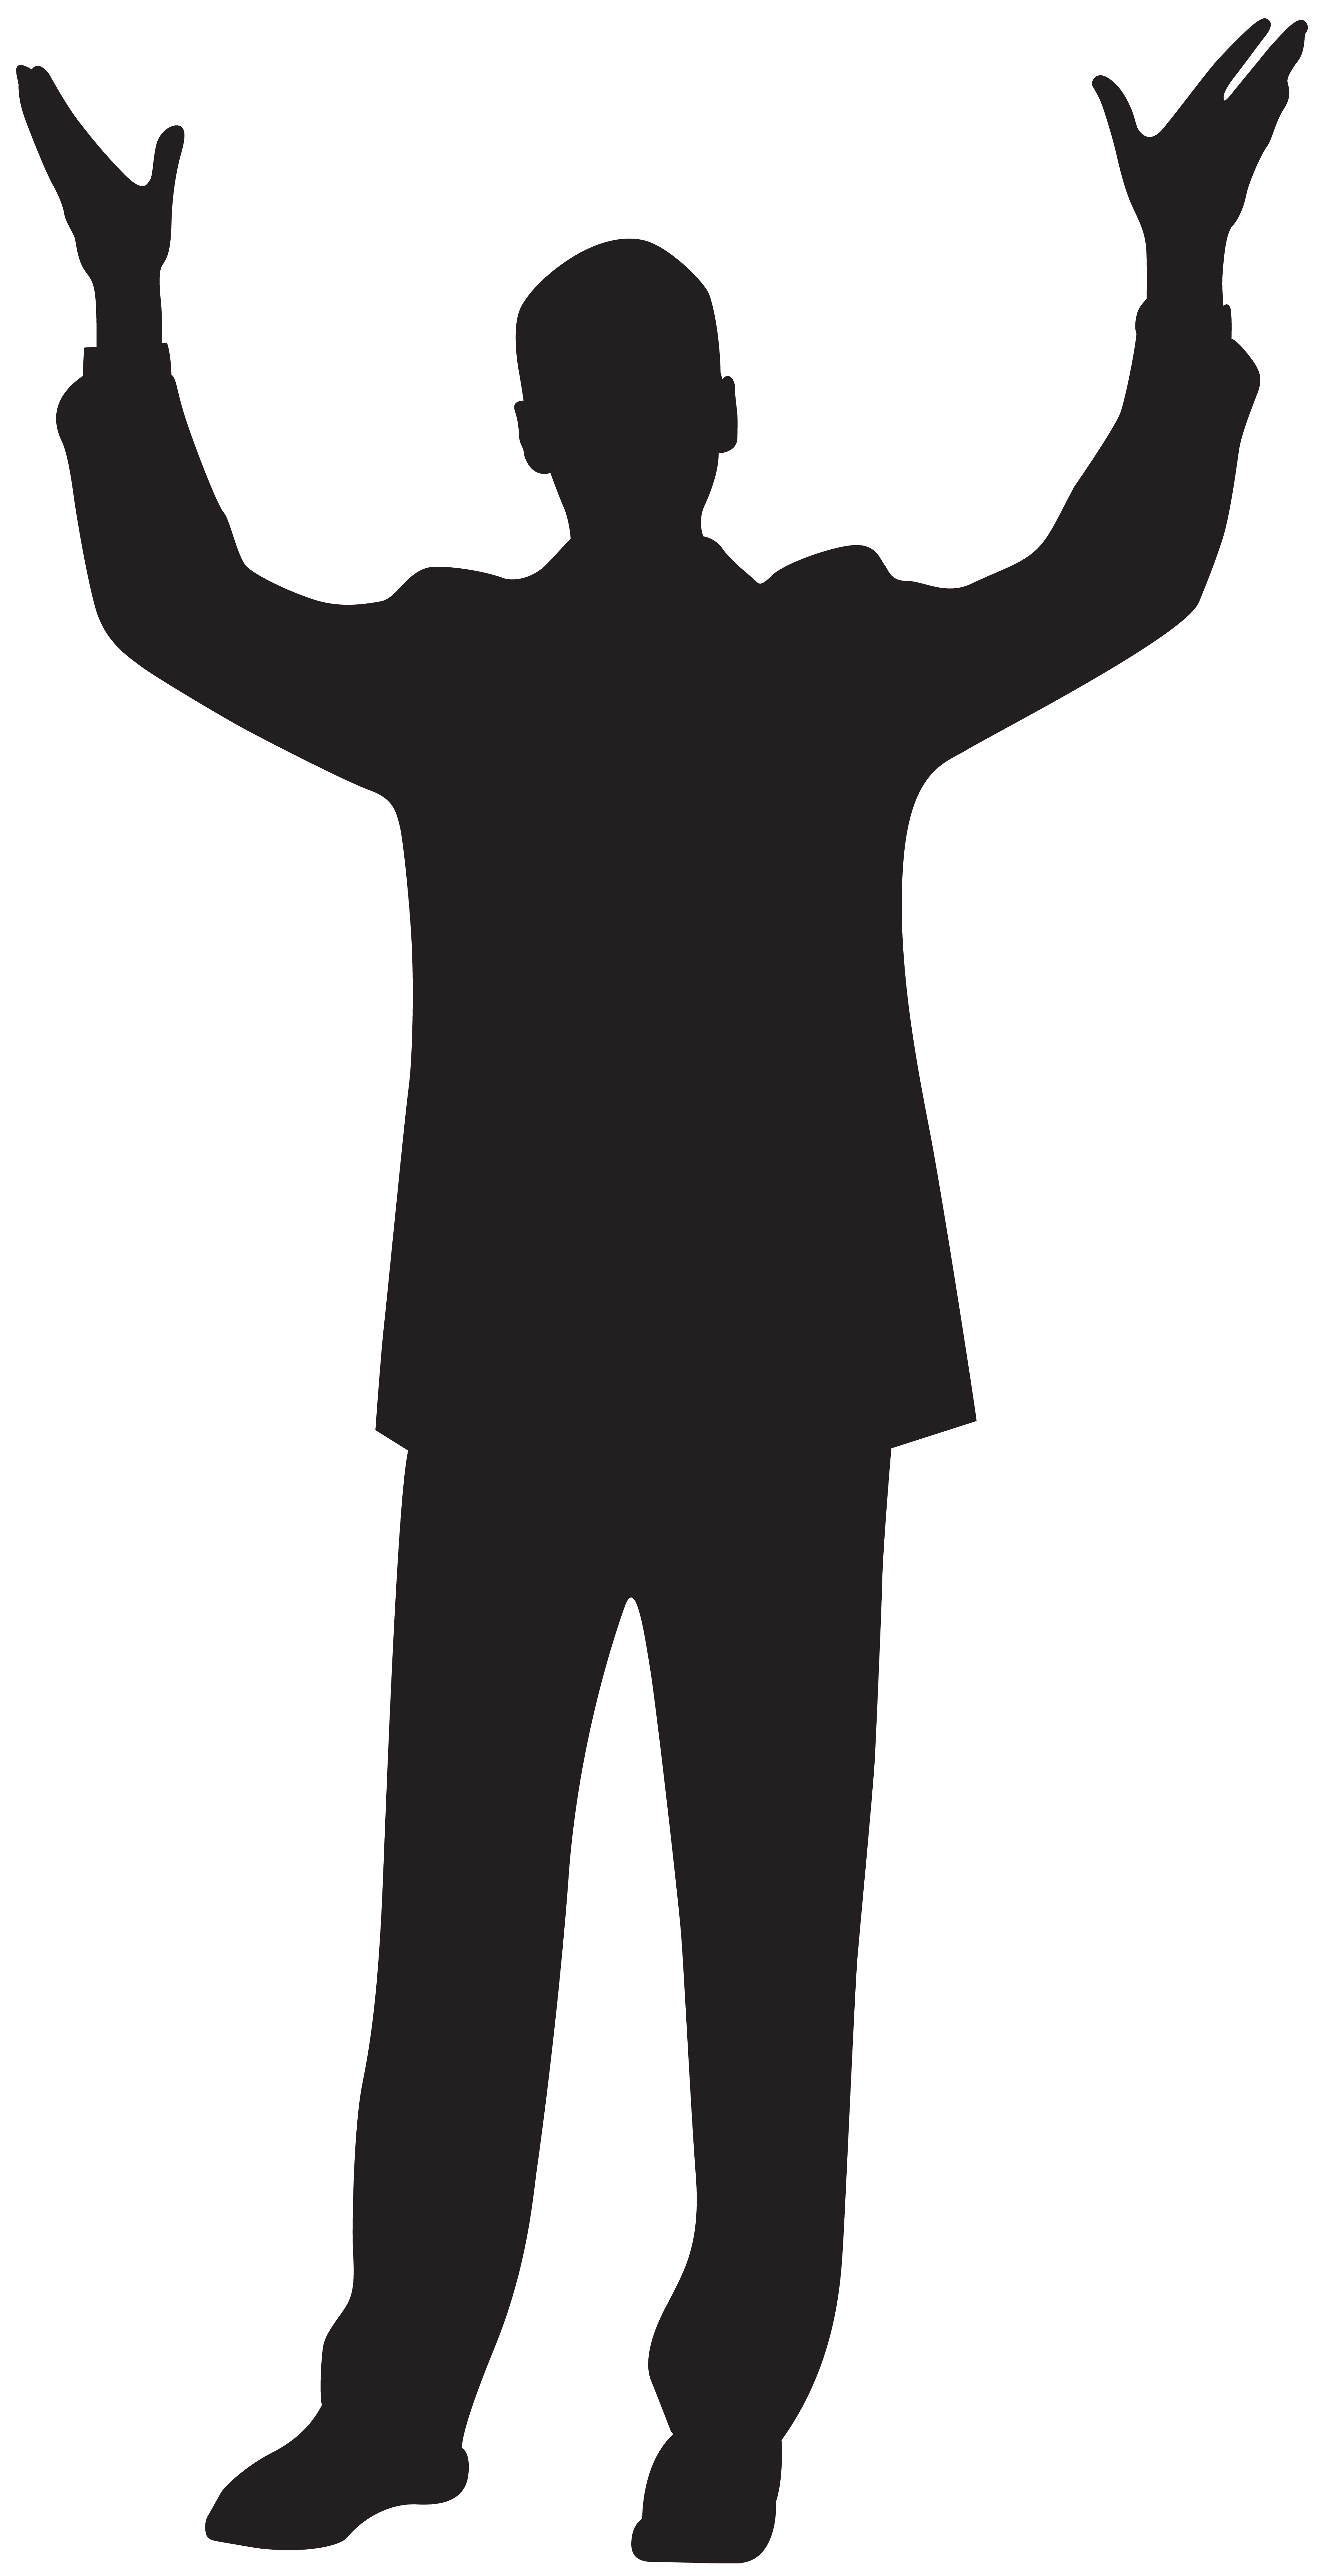 svg transparent stock Guy clipart single person. Man silhouette at getdrawings